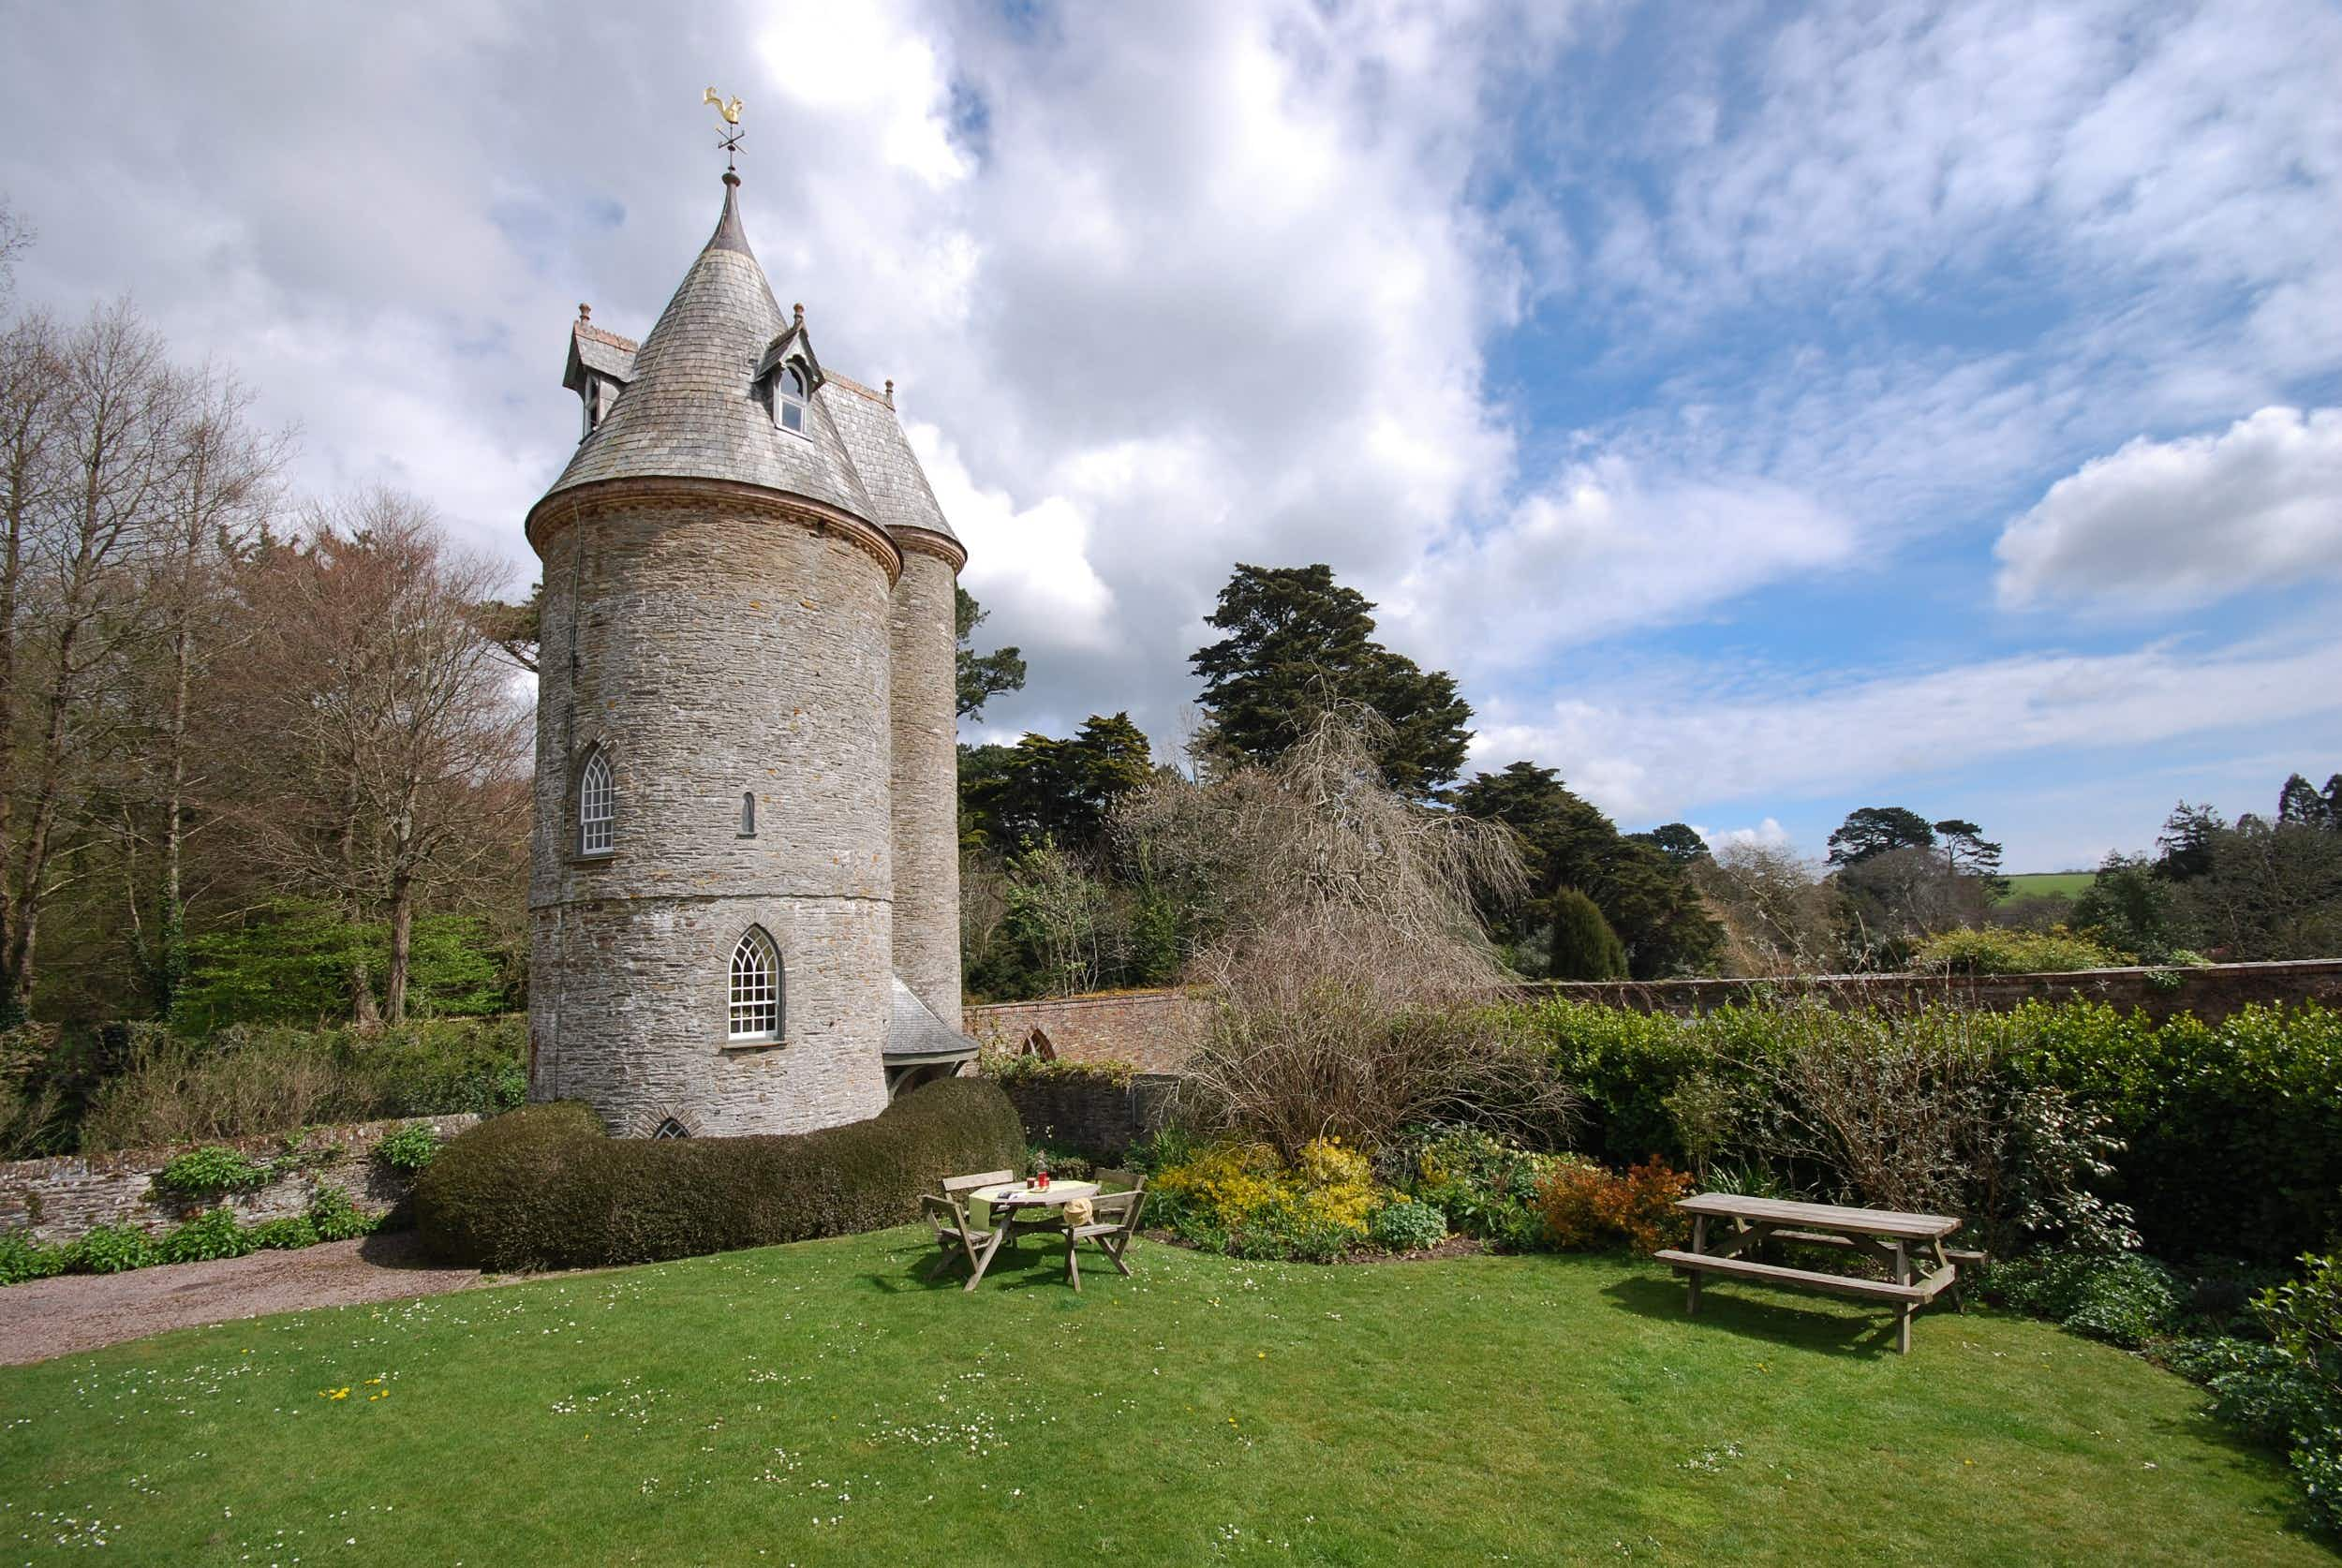 The Water Tower in Cornwall © National Trust Images/Mike Henton